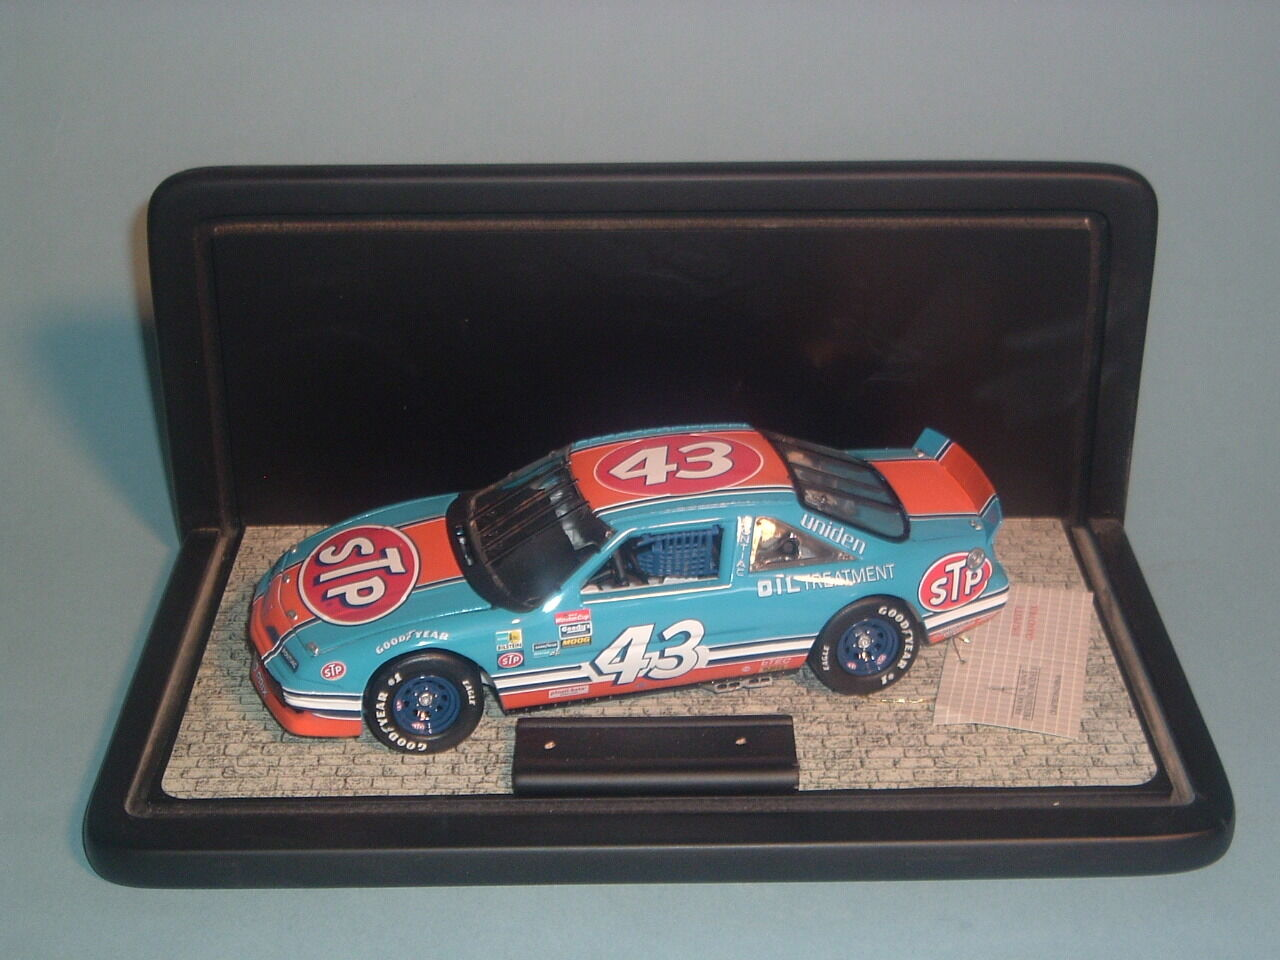 Richard petty 1992  pontac grand - prix - fan anerkennung tour von franklin mint 1 24dcs